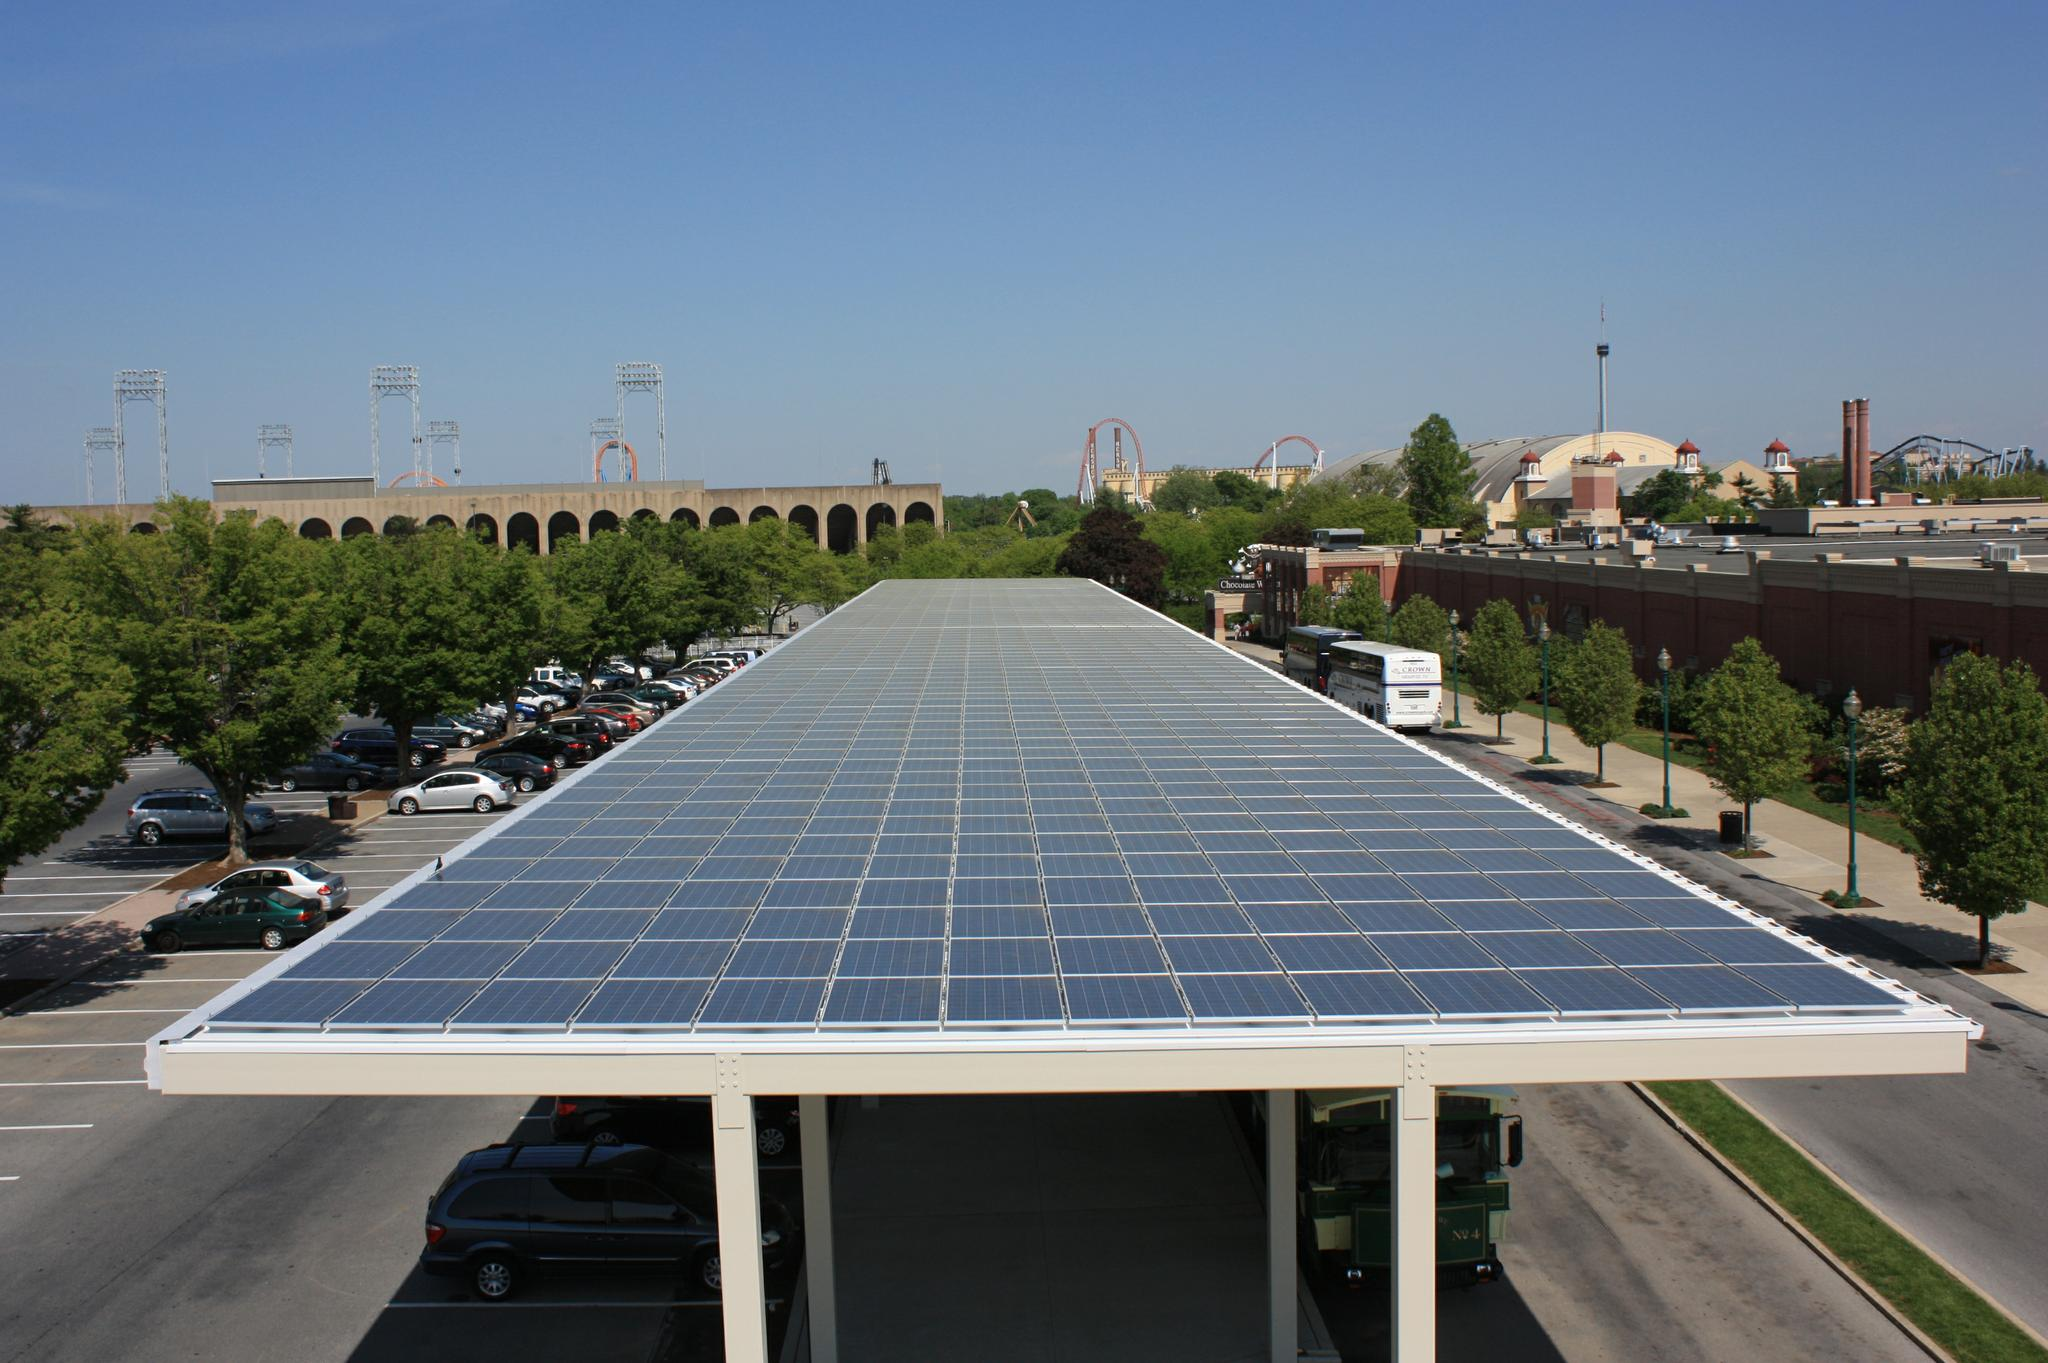 Hershey Chocolate World Solar PV Canopy-Our Original Design & Hershey Chocolate World Solar Canopy | EnergySage